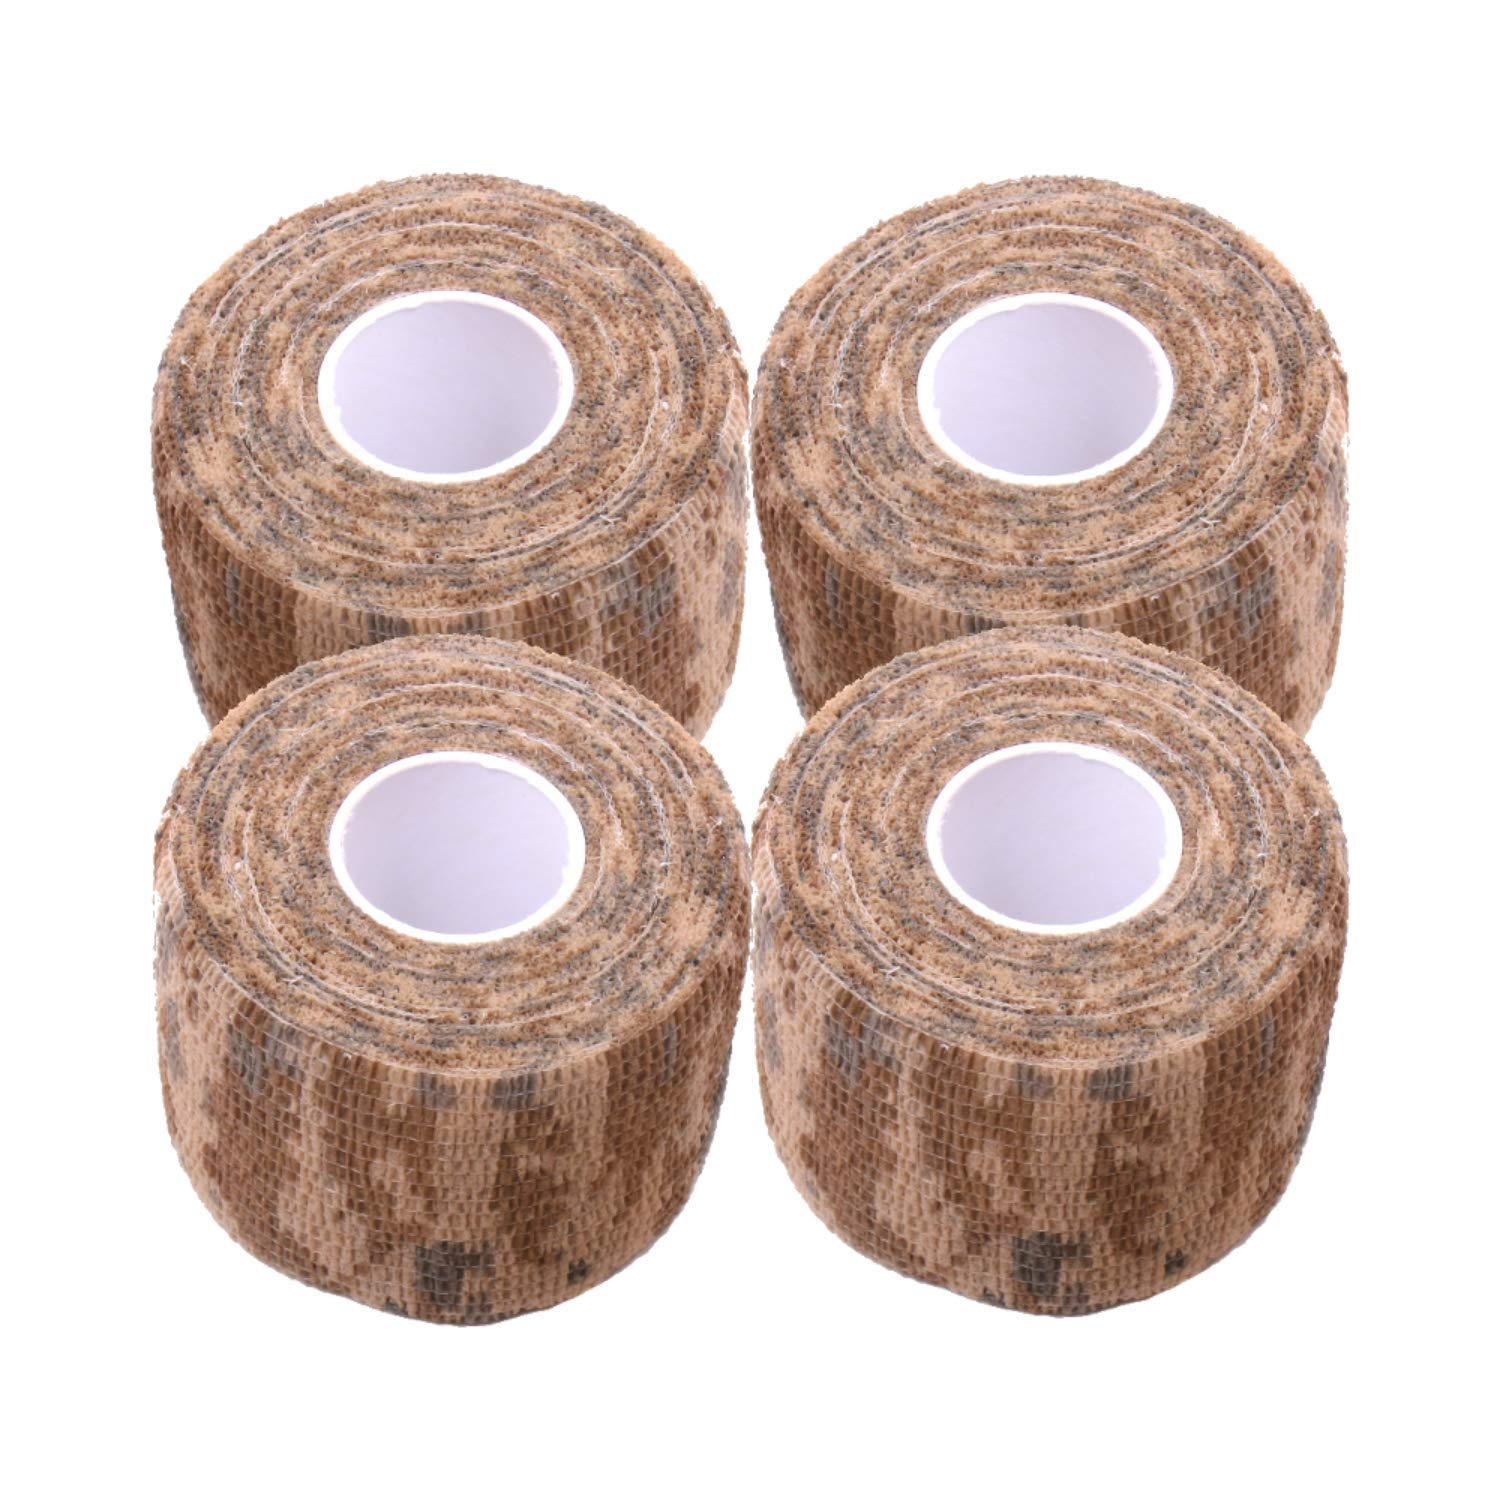 Arcturus Multi-Purpose Camo Fabric Wraps - Extra Long 36 ft Roll - Reusable Camouflage for Hunting